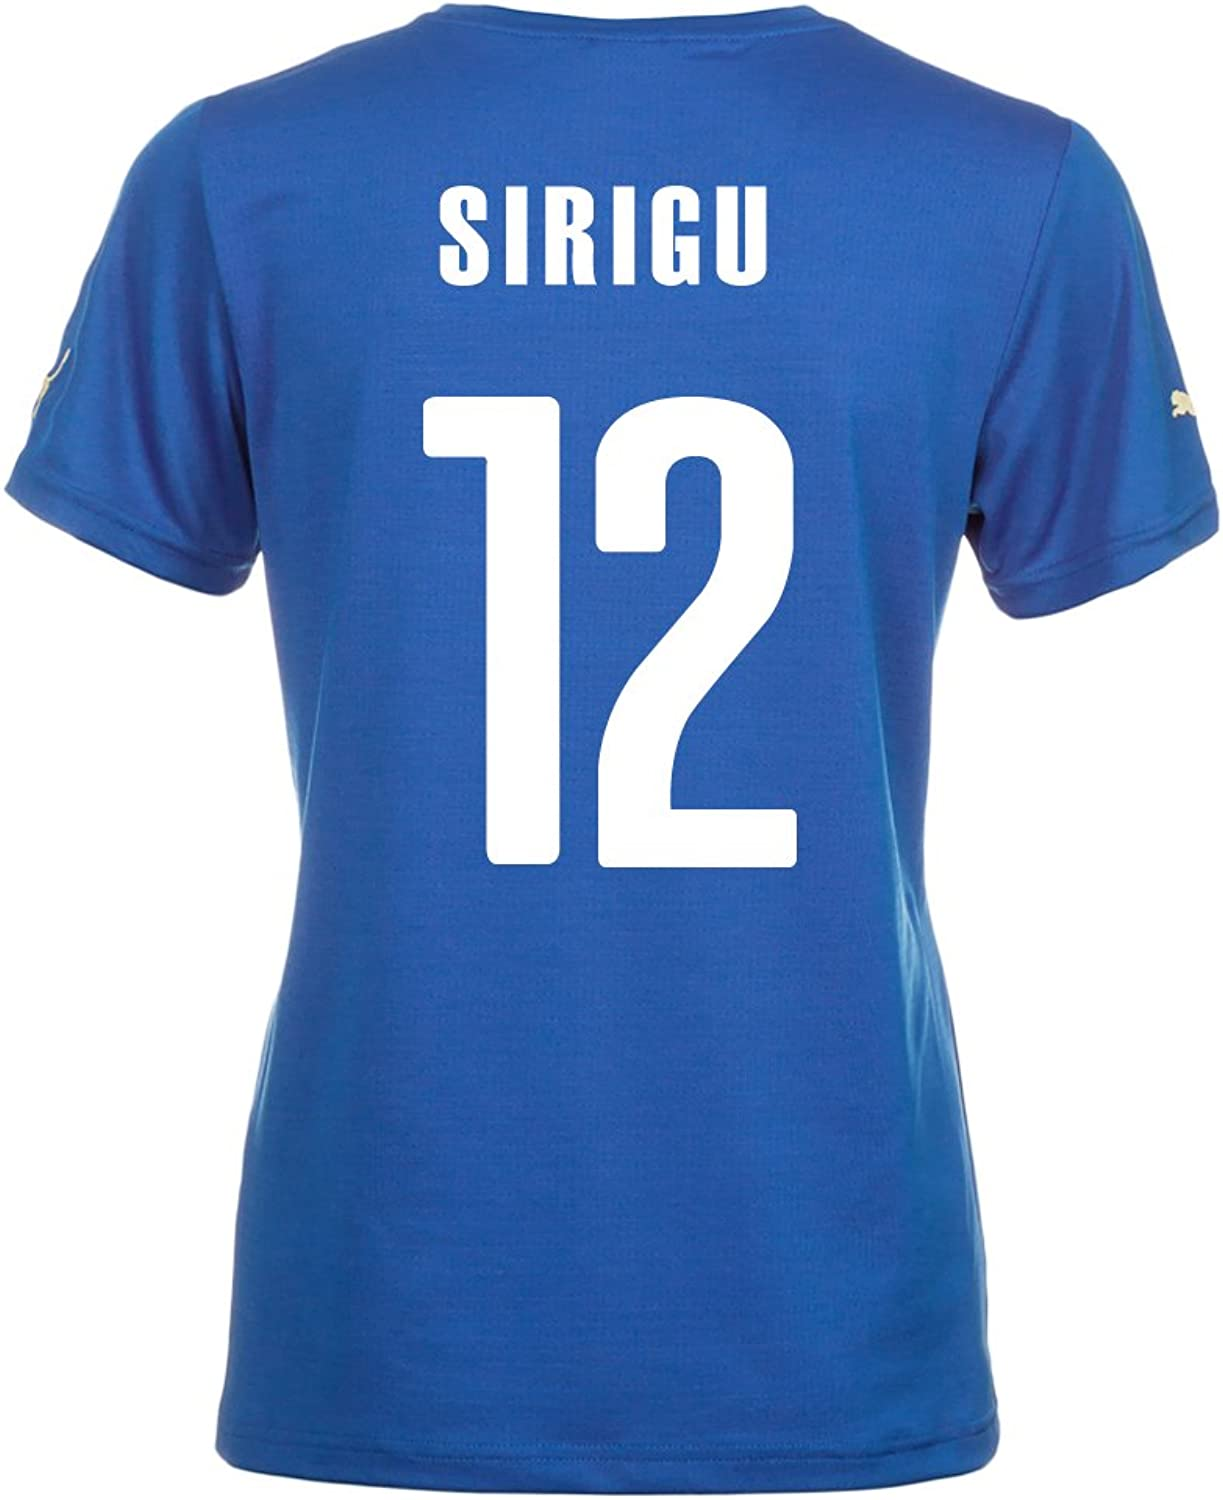 Puma SIRIGU  12  Home Jersey World Cup 2014 (Women)